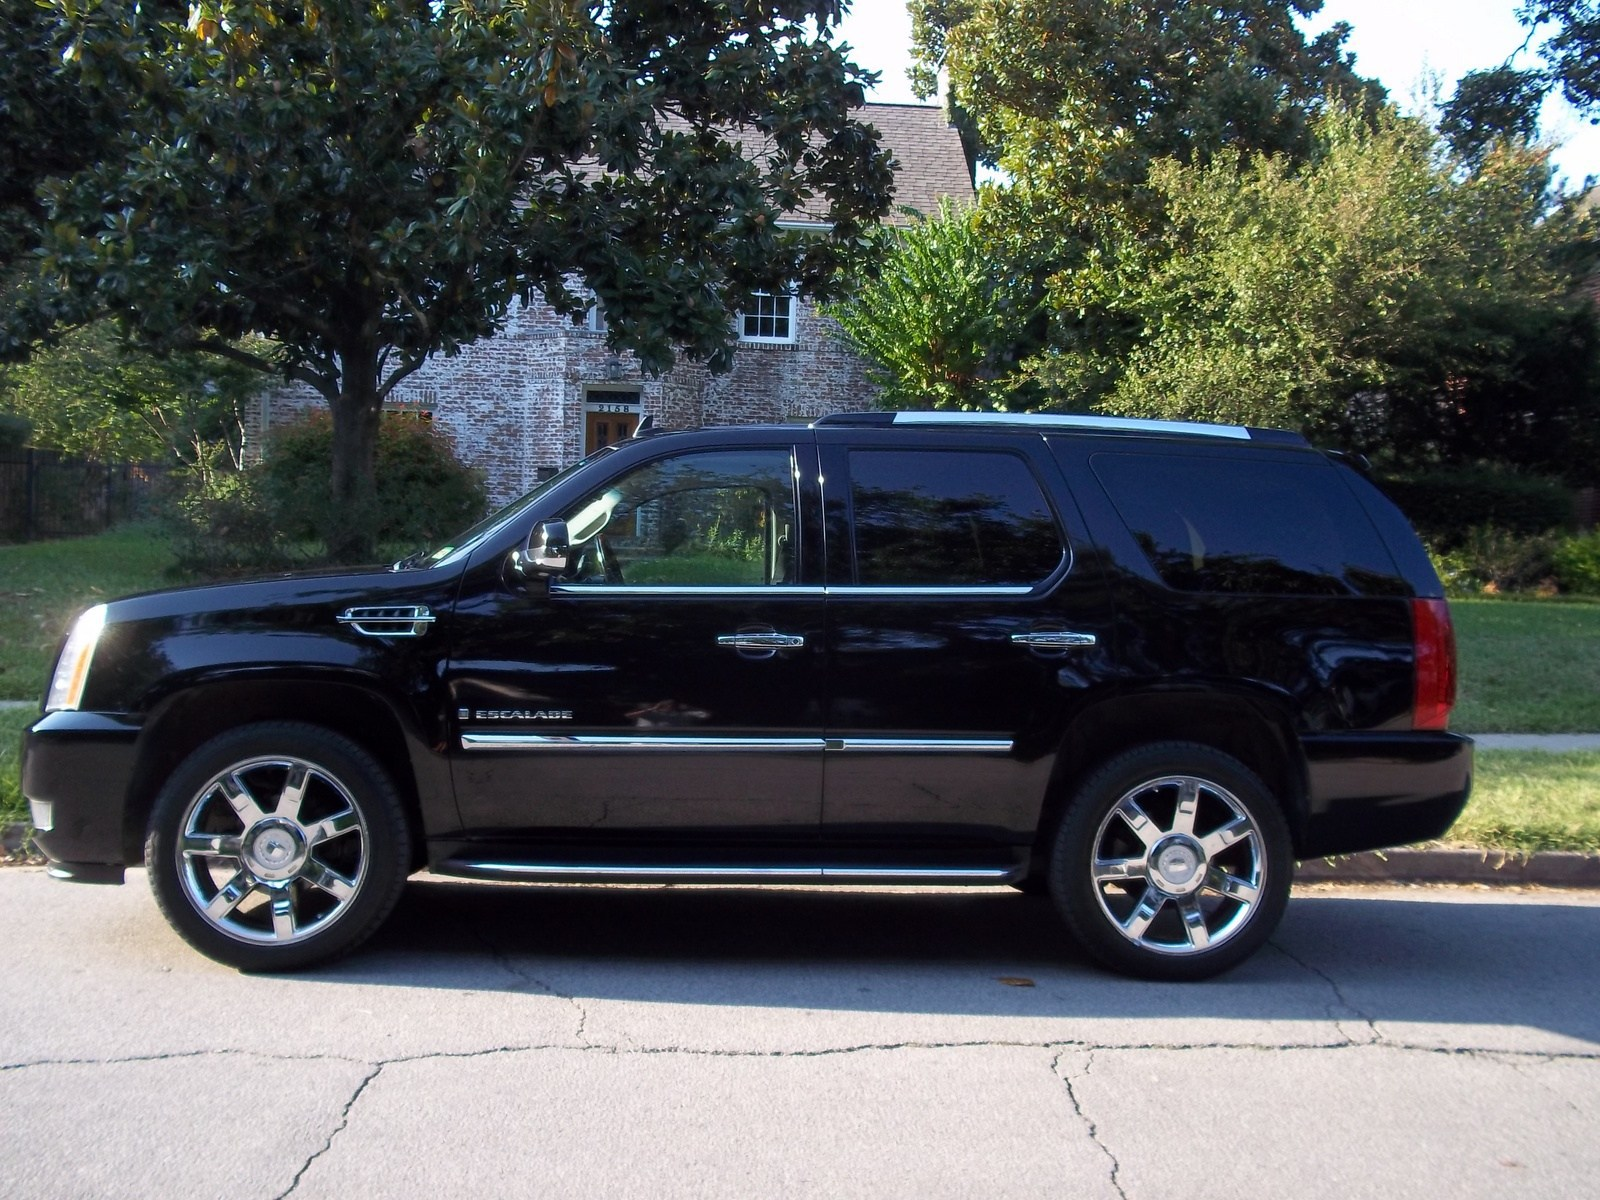 Cheap Cars for Sale Near Me Craigslist Elegant Dallas Craigslist Used Cars by Owner Awesome Craigslist Dallas Tx